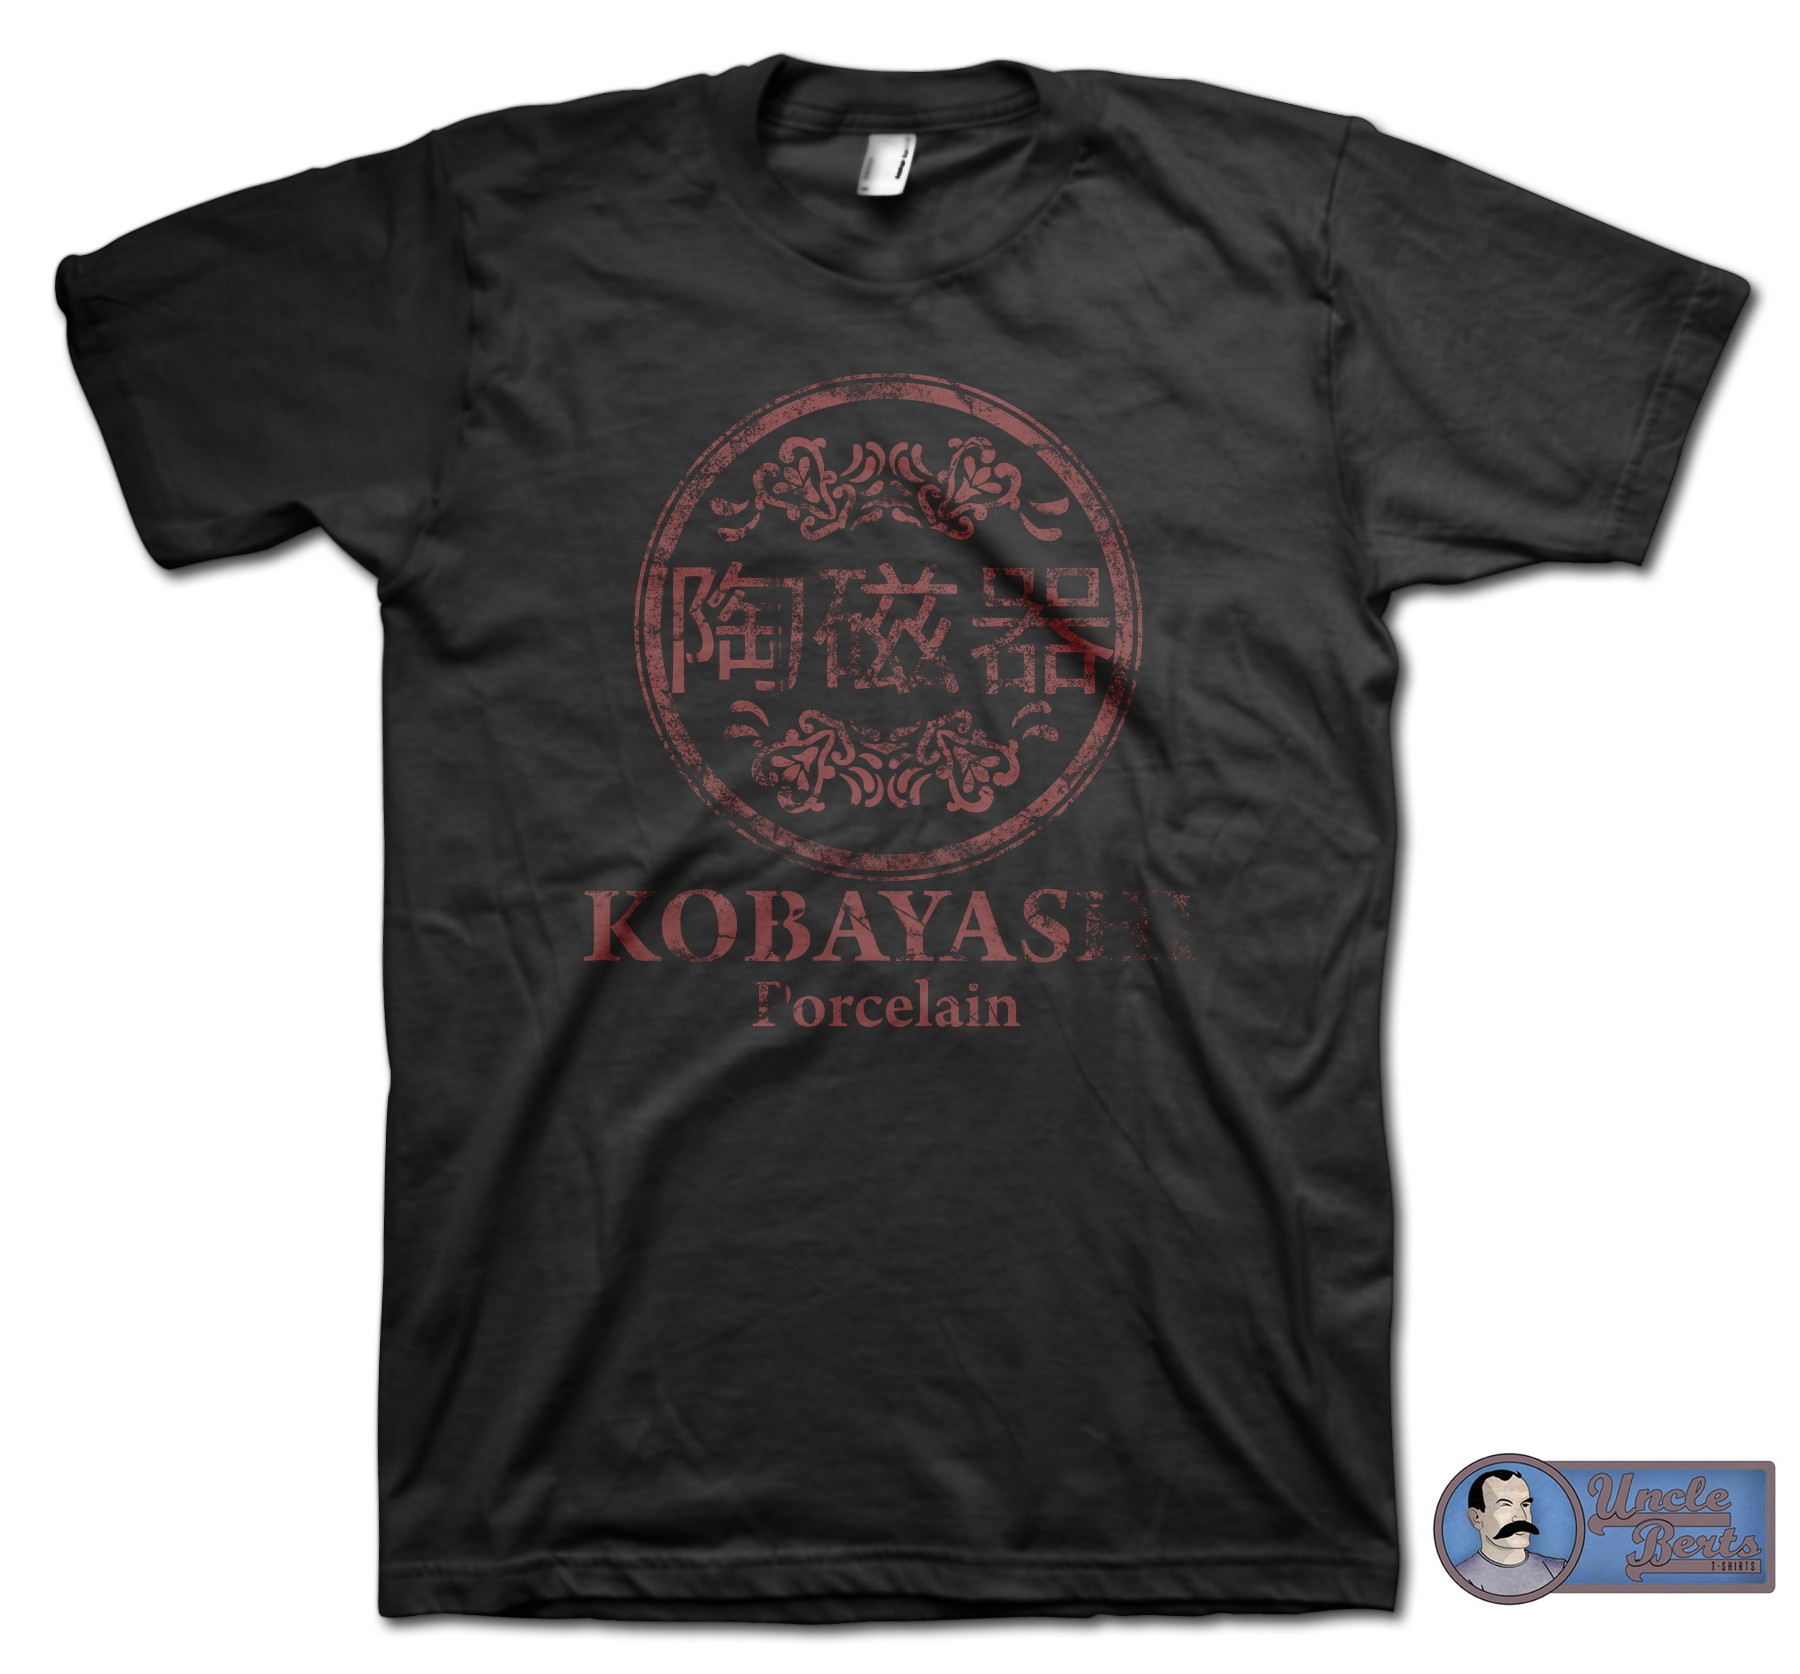 The Usual Suspects (1995) Inspired Kobayashi Porcelain T-Shirt